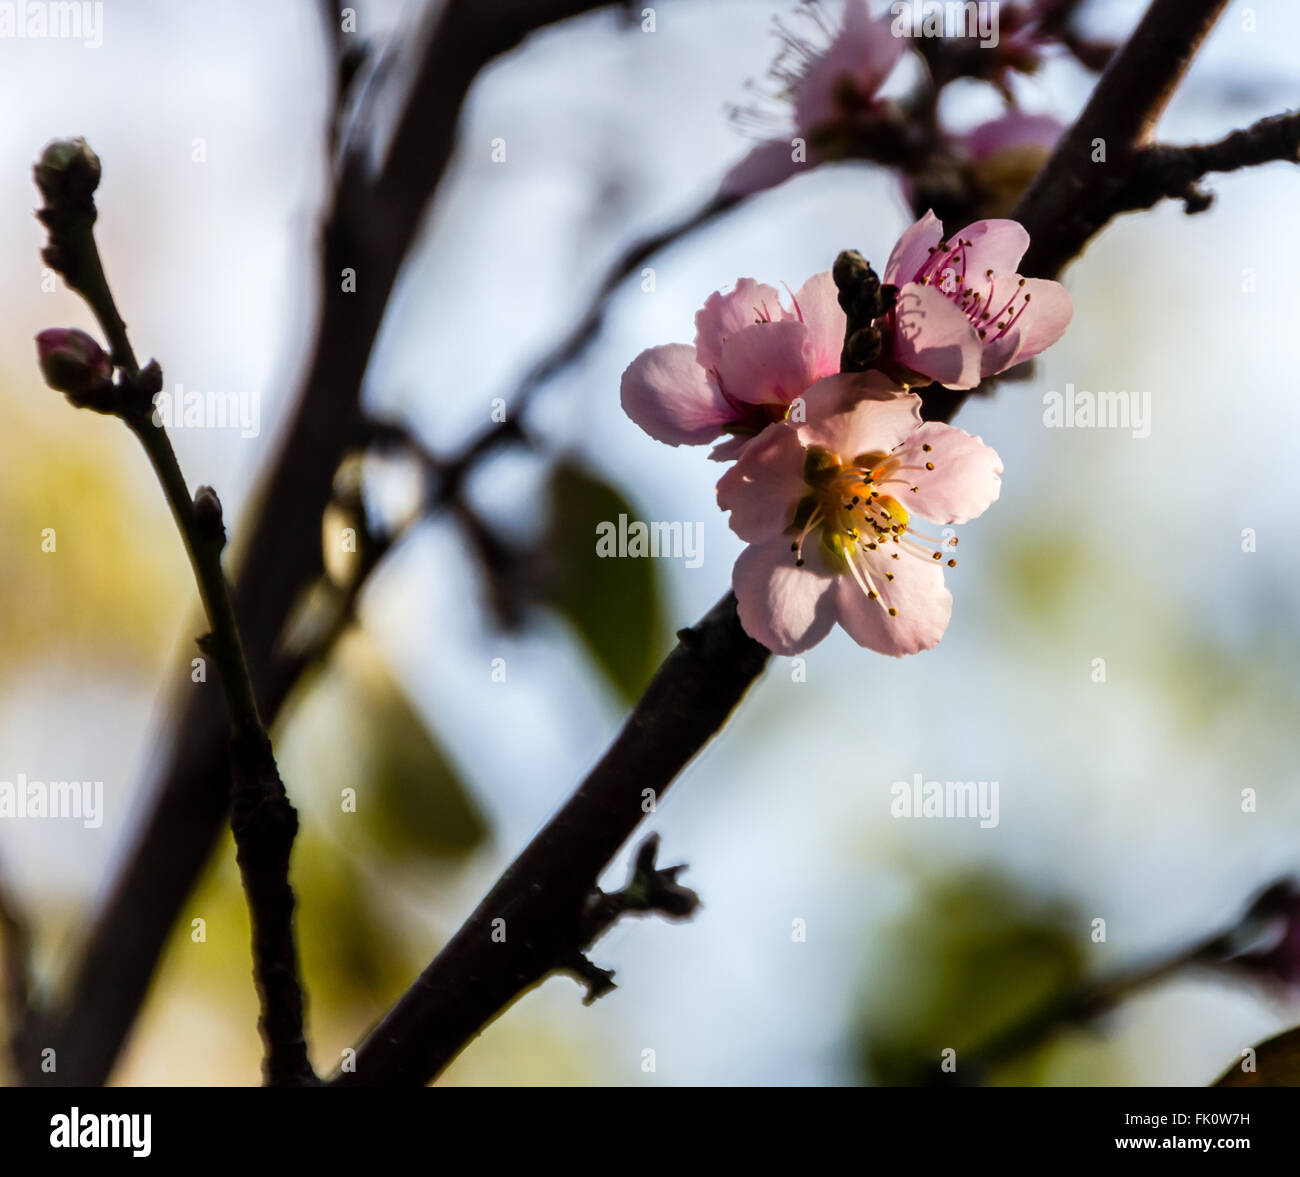 The blossoms of a peach tree - Stock Image